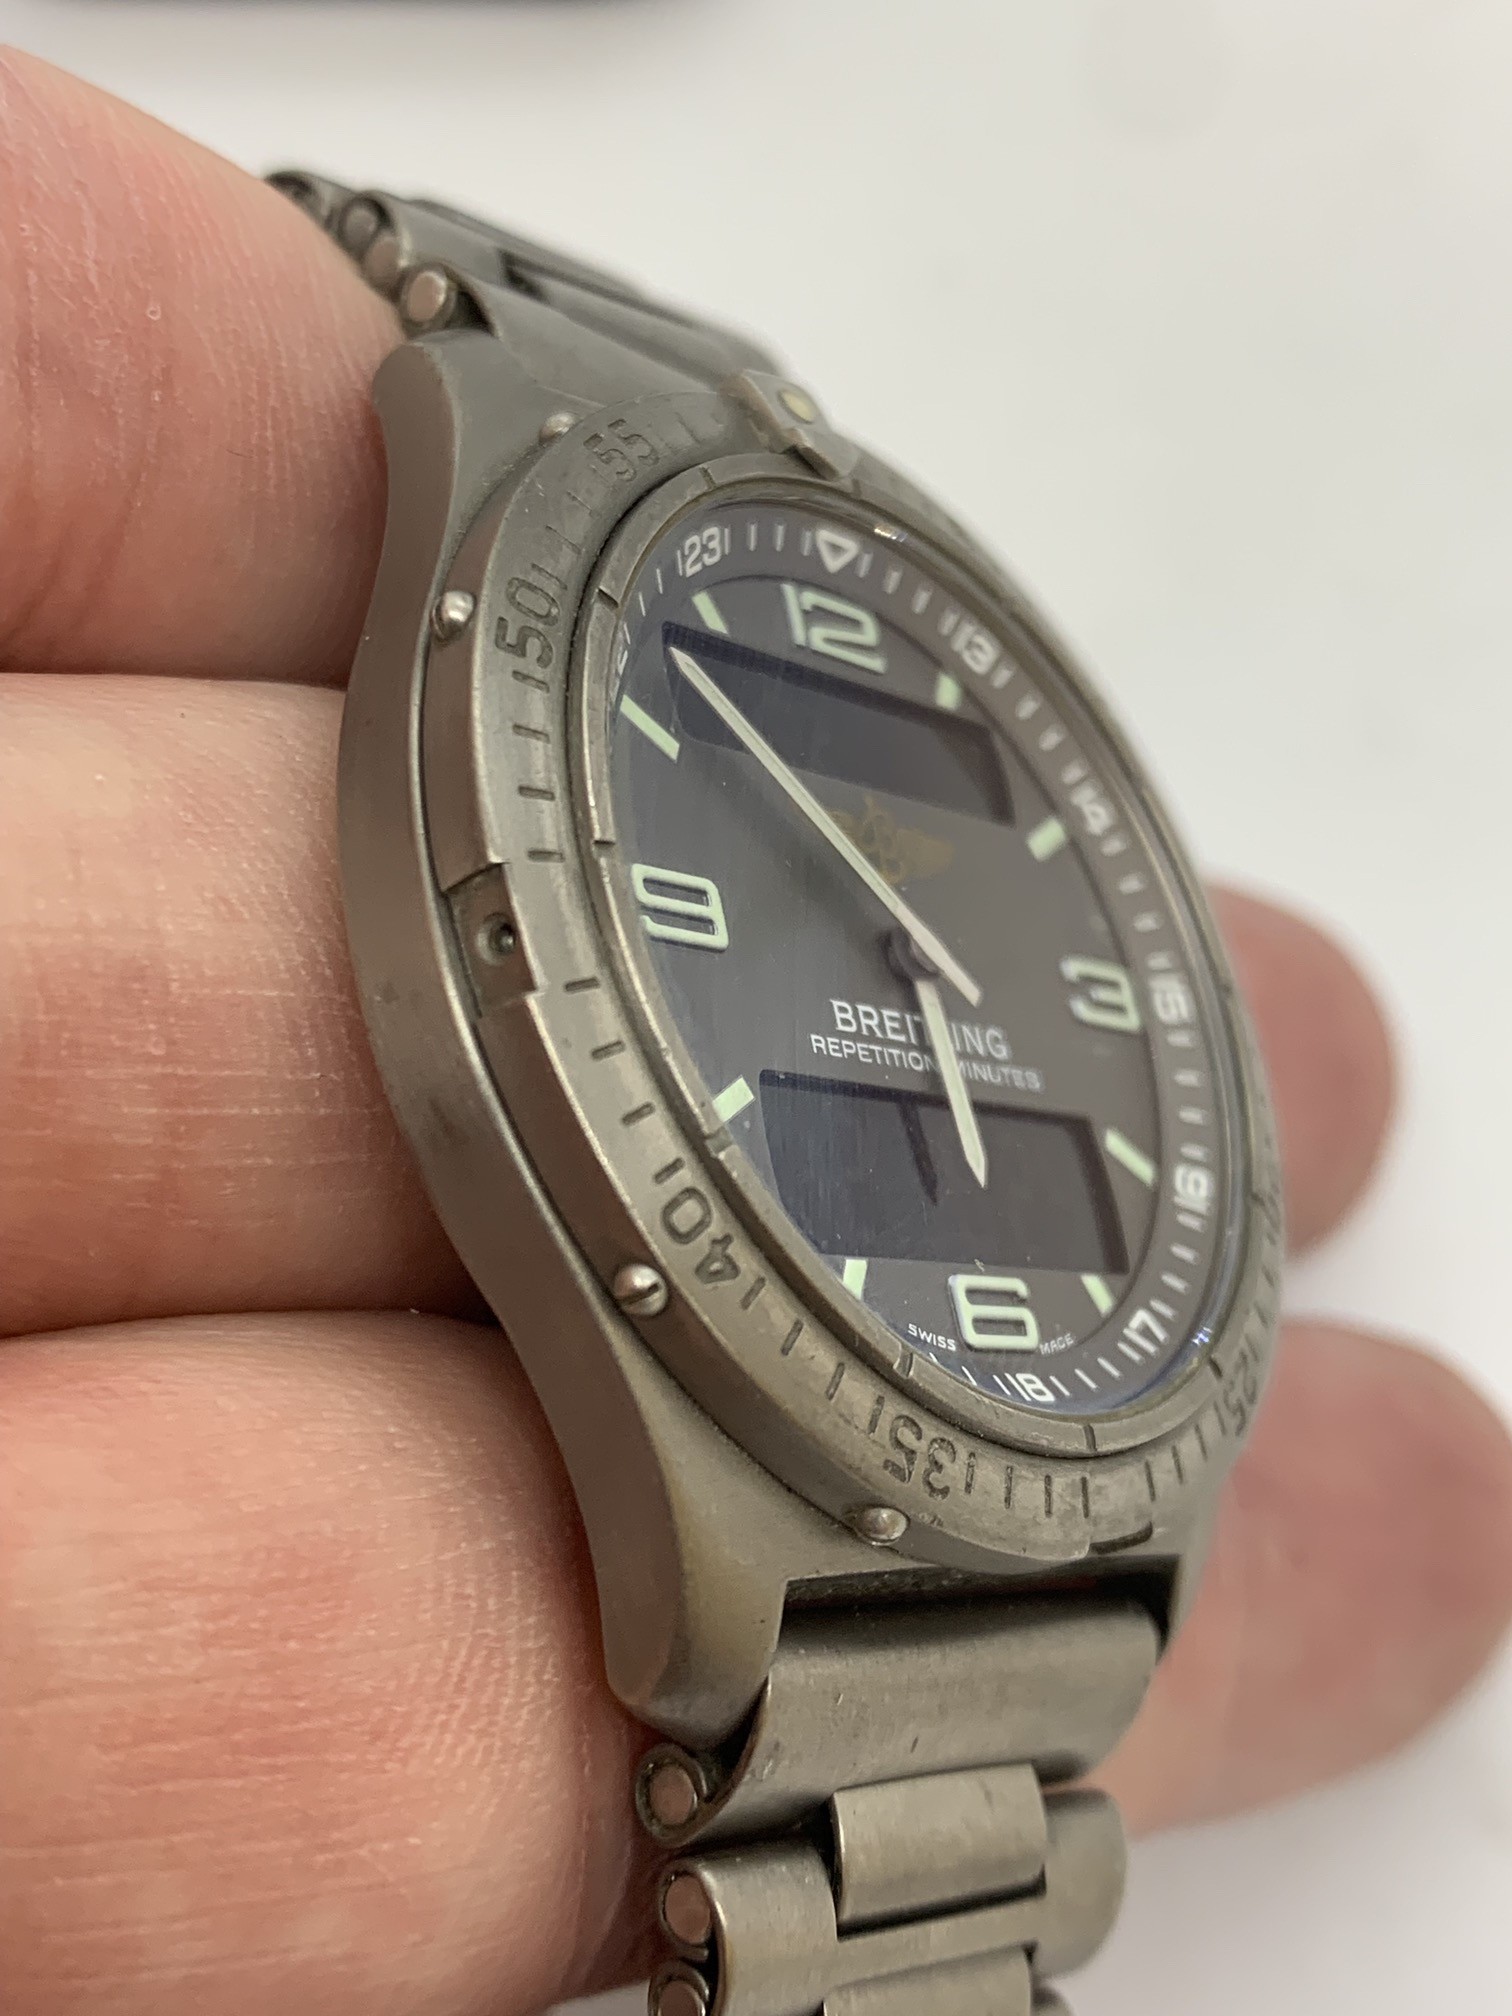 BREITLING TITANIUM WATCH A/F - Image 2 of 15